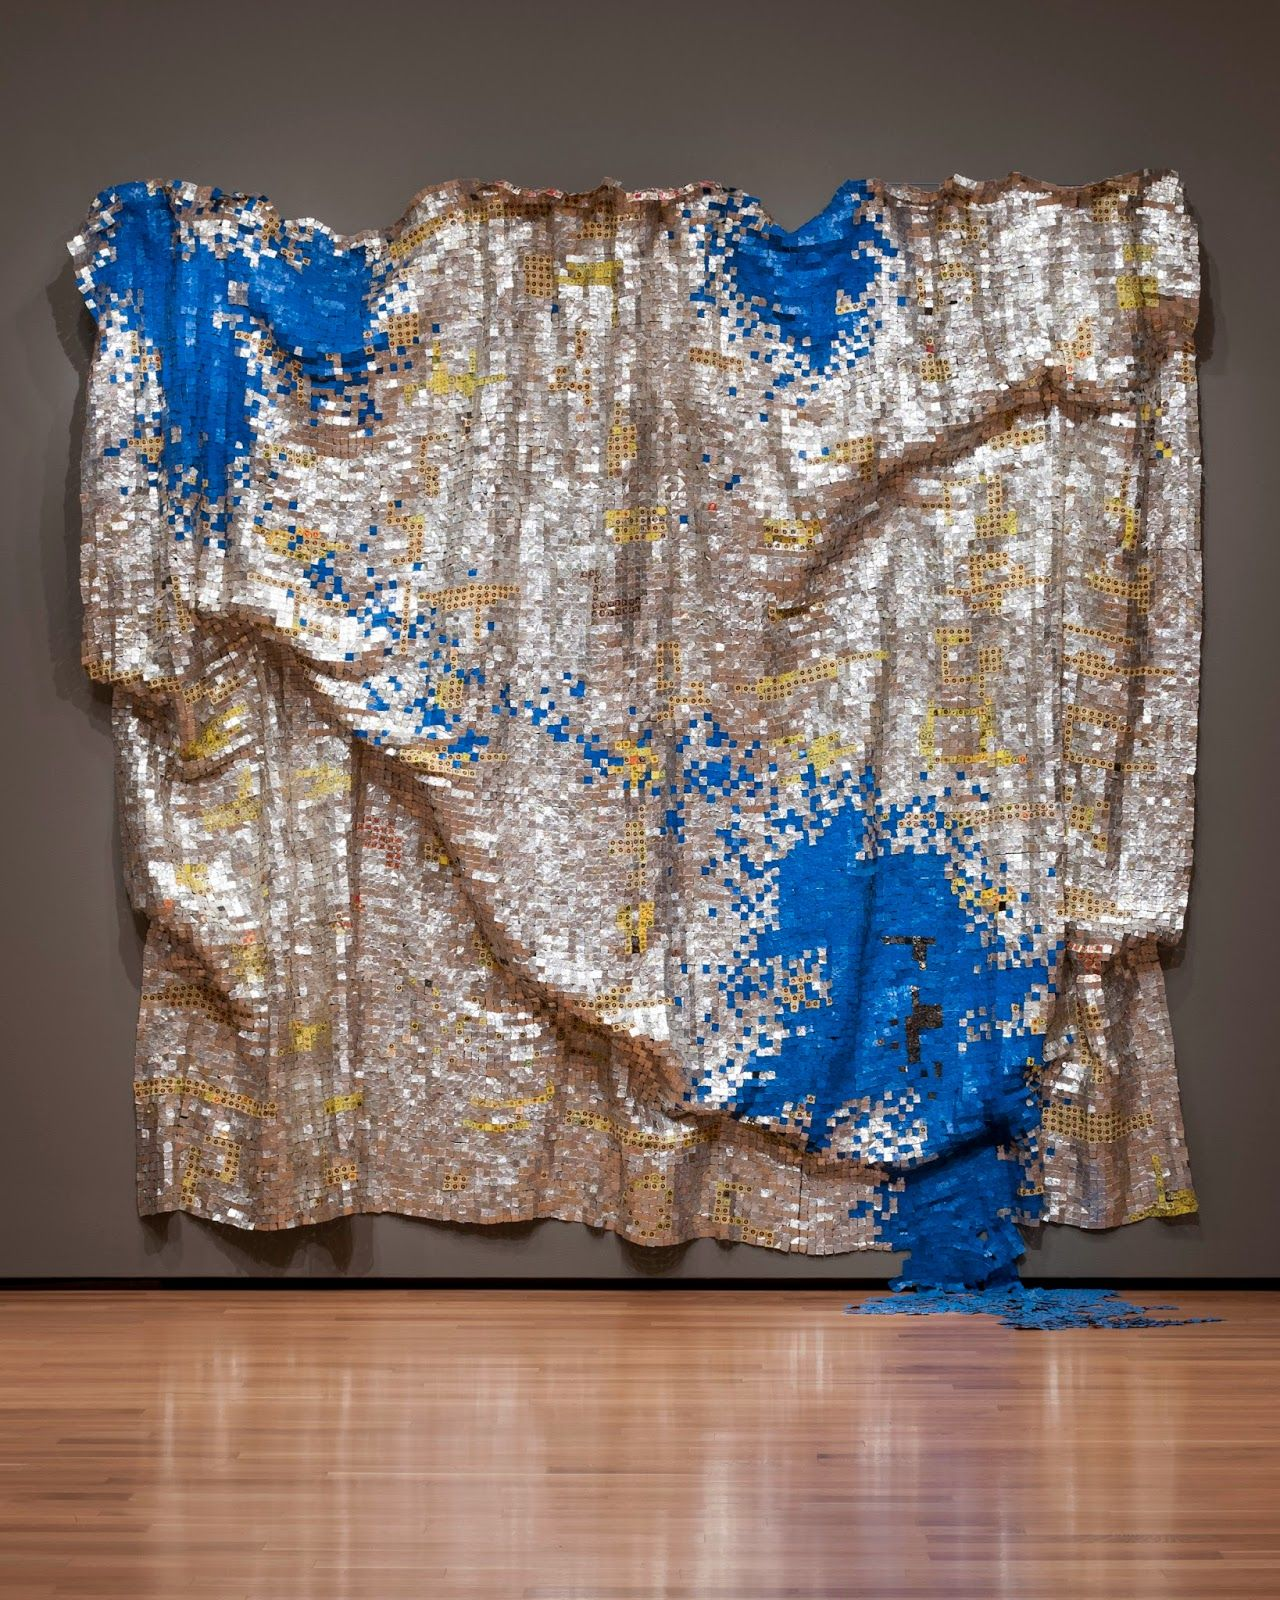 El Anatsui S Mesmerizing Exhibition Gravity And Grace Monumental Works San Diego Downtown Sculpture Art High Art Art